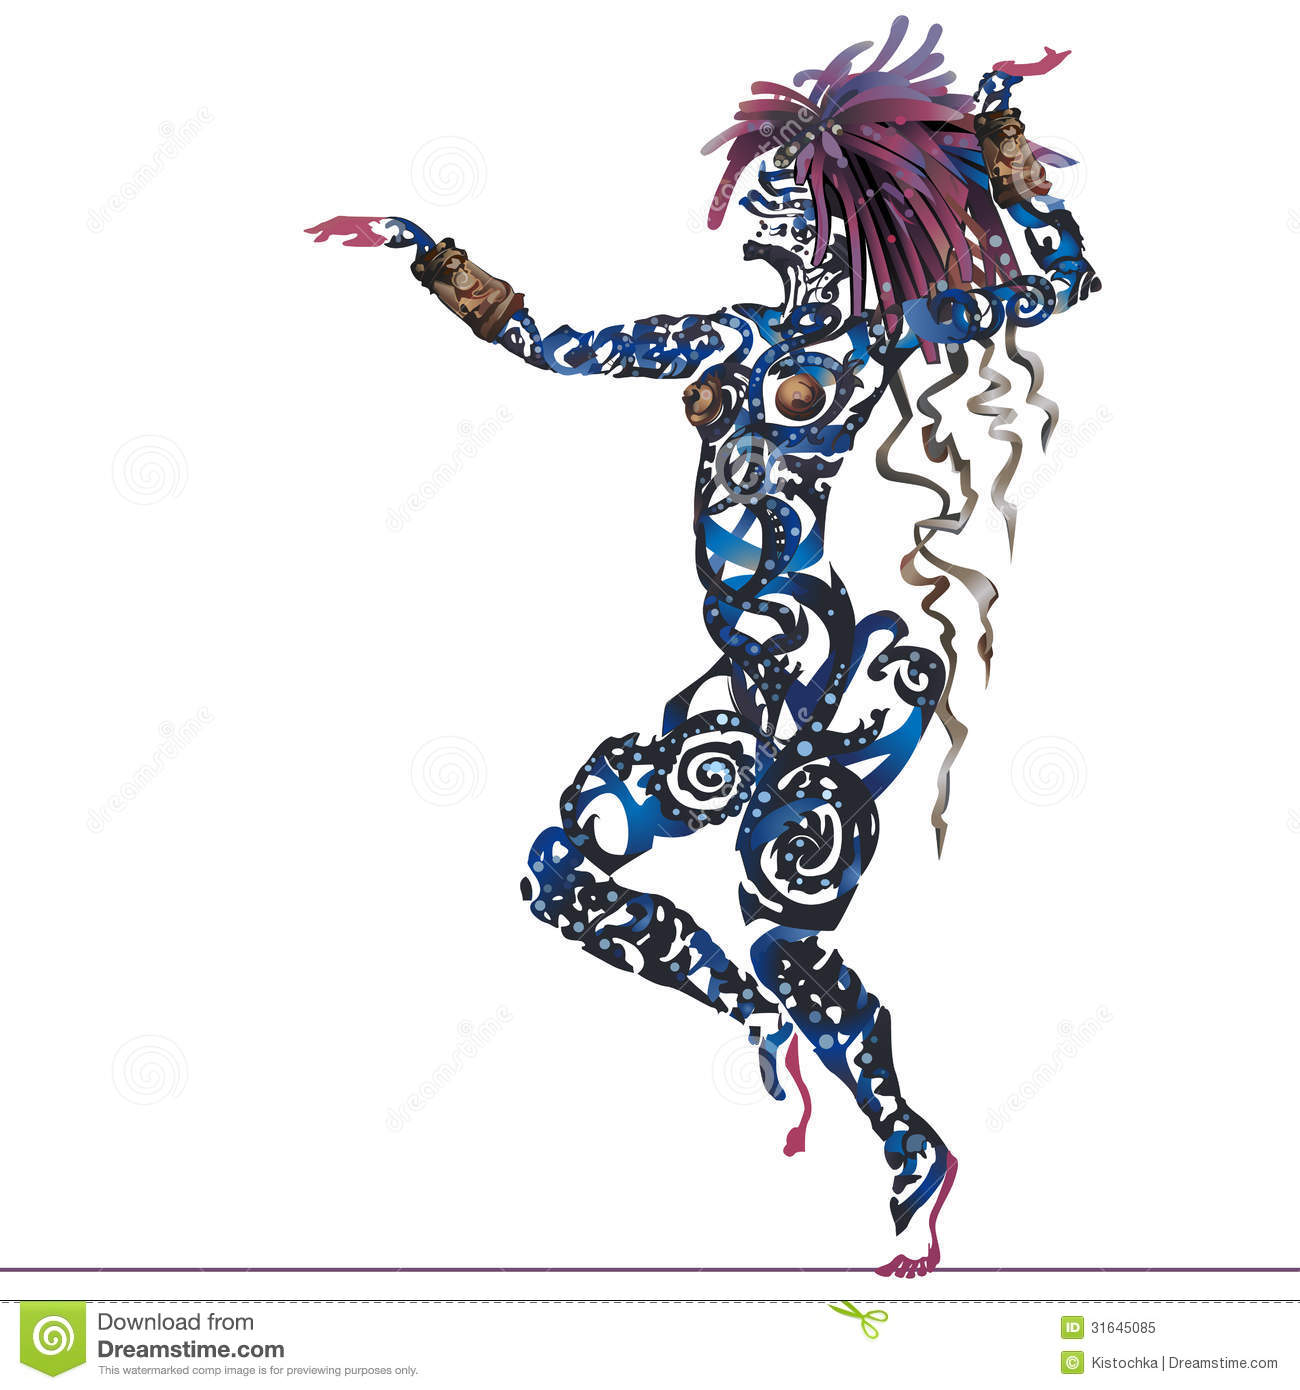 Dance Tattoo Stock Illustrations 3 012 Dance Tattoo Stock Illustrations Vectors Clipart Dreamstime